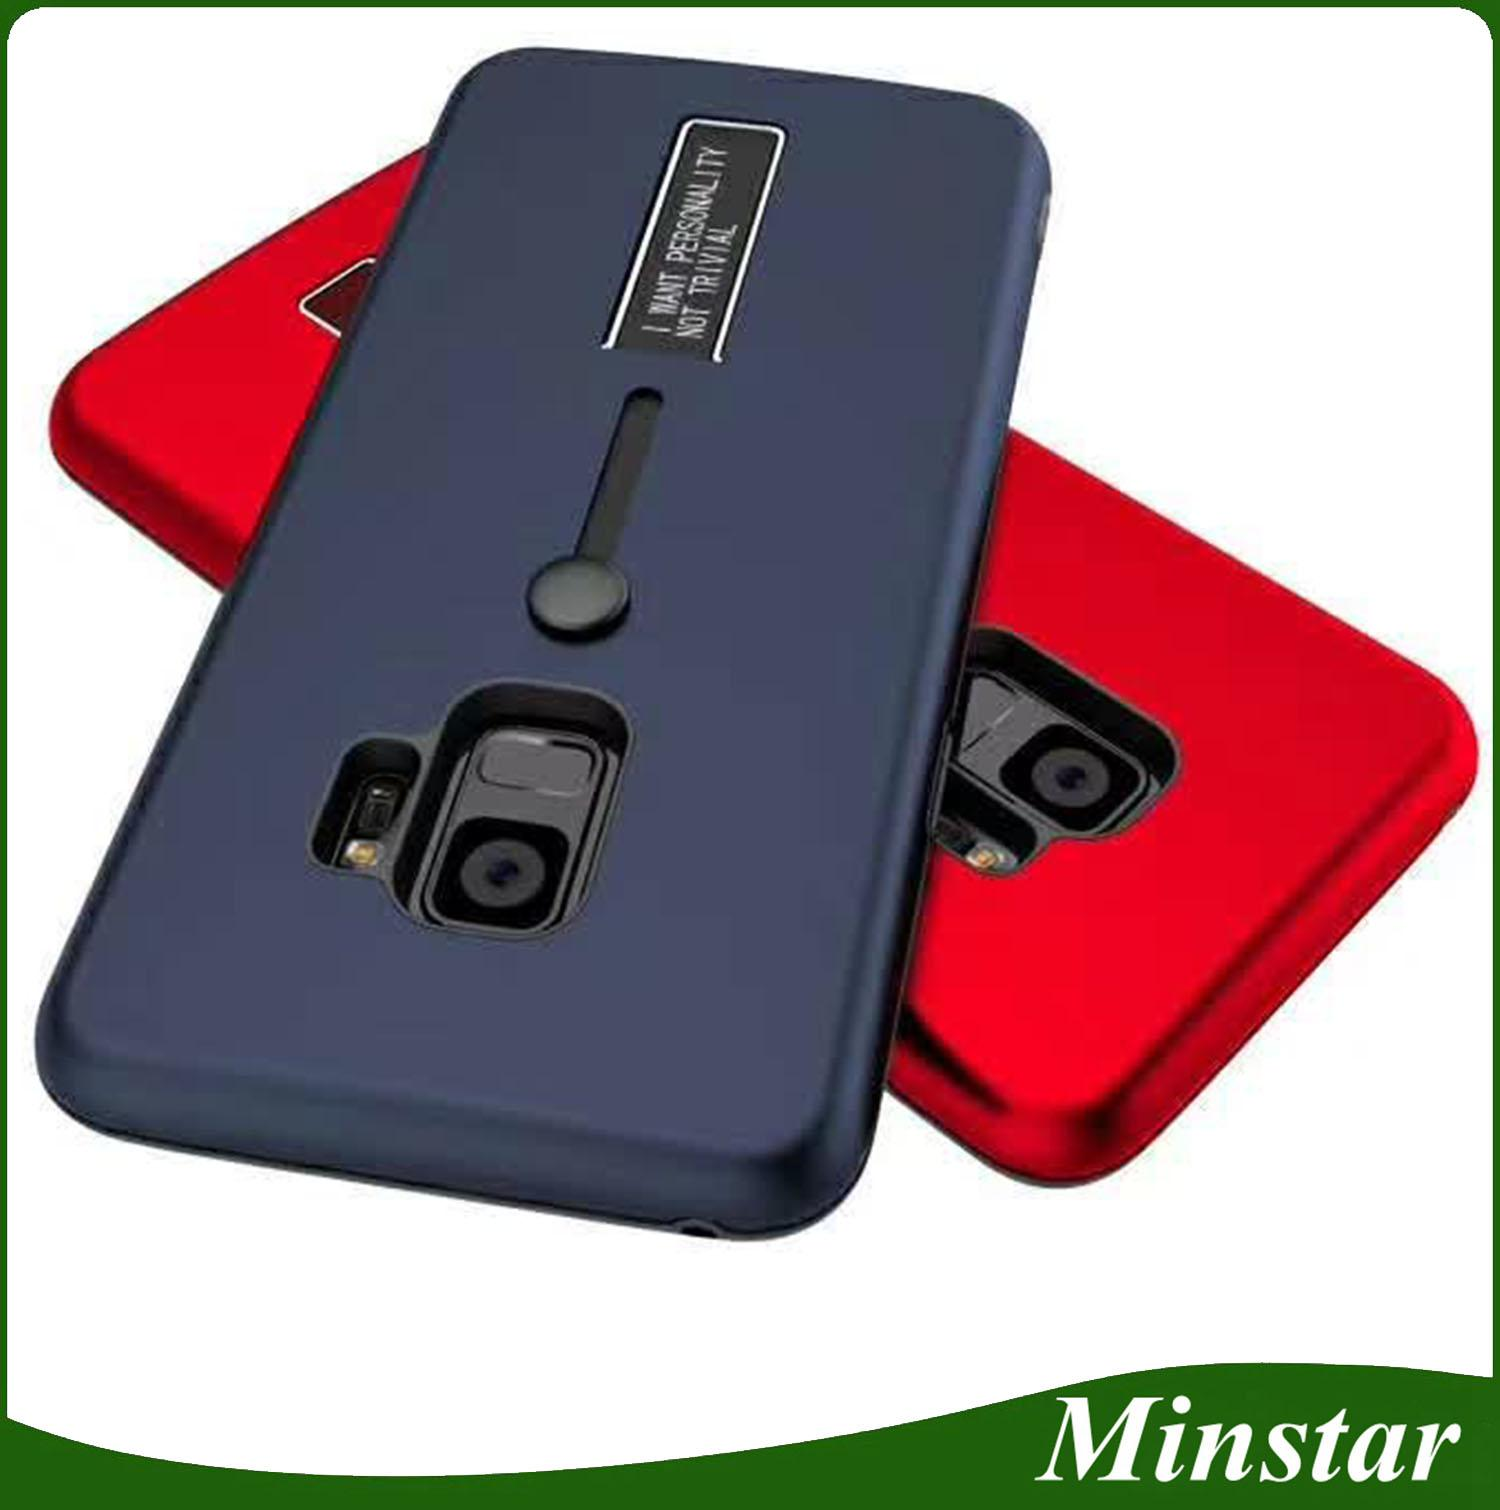 Small MOQ Soft Ring Phone Case Hybird Ring Case for Samsung J3 Prime J3 Emerge 2017 Samsung S7 Edge Cover Soft Ring Case for J3 Prime J3 Emerger Cover Case